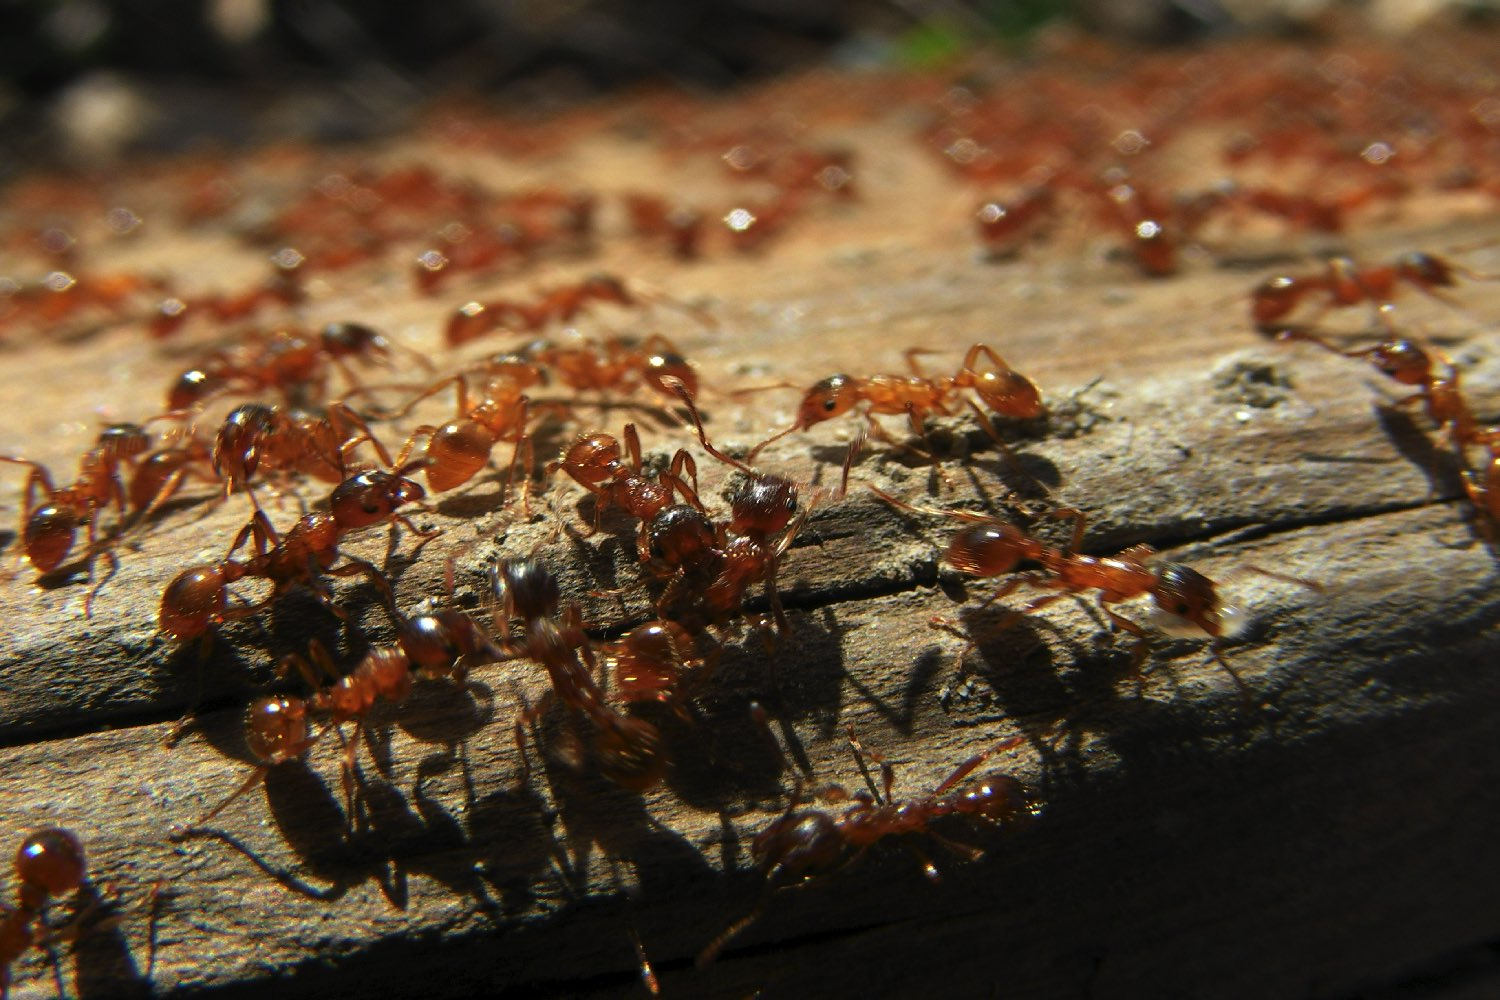 By studying ant colonies, MIT devised a totally new way to ...